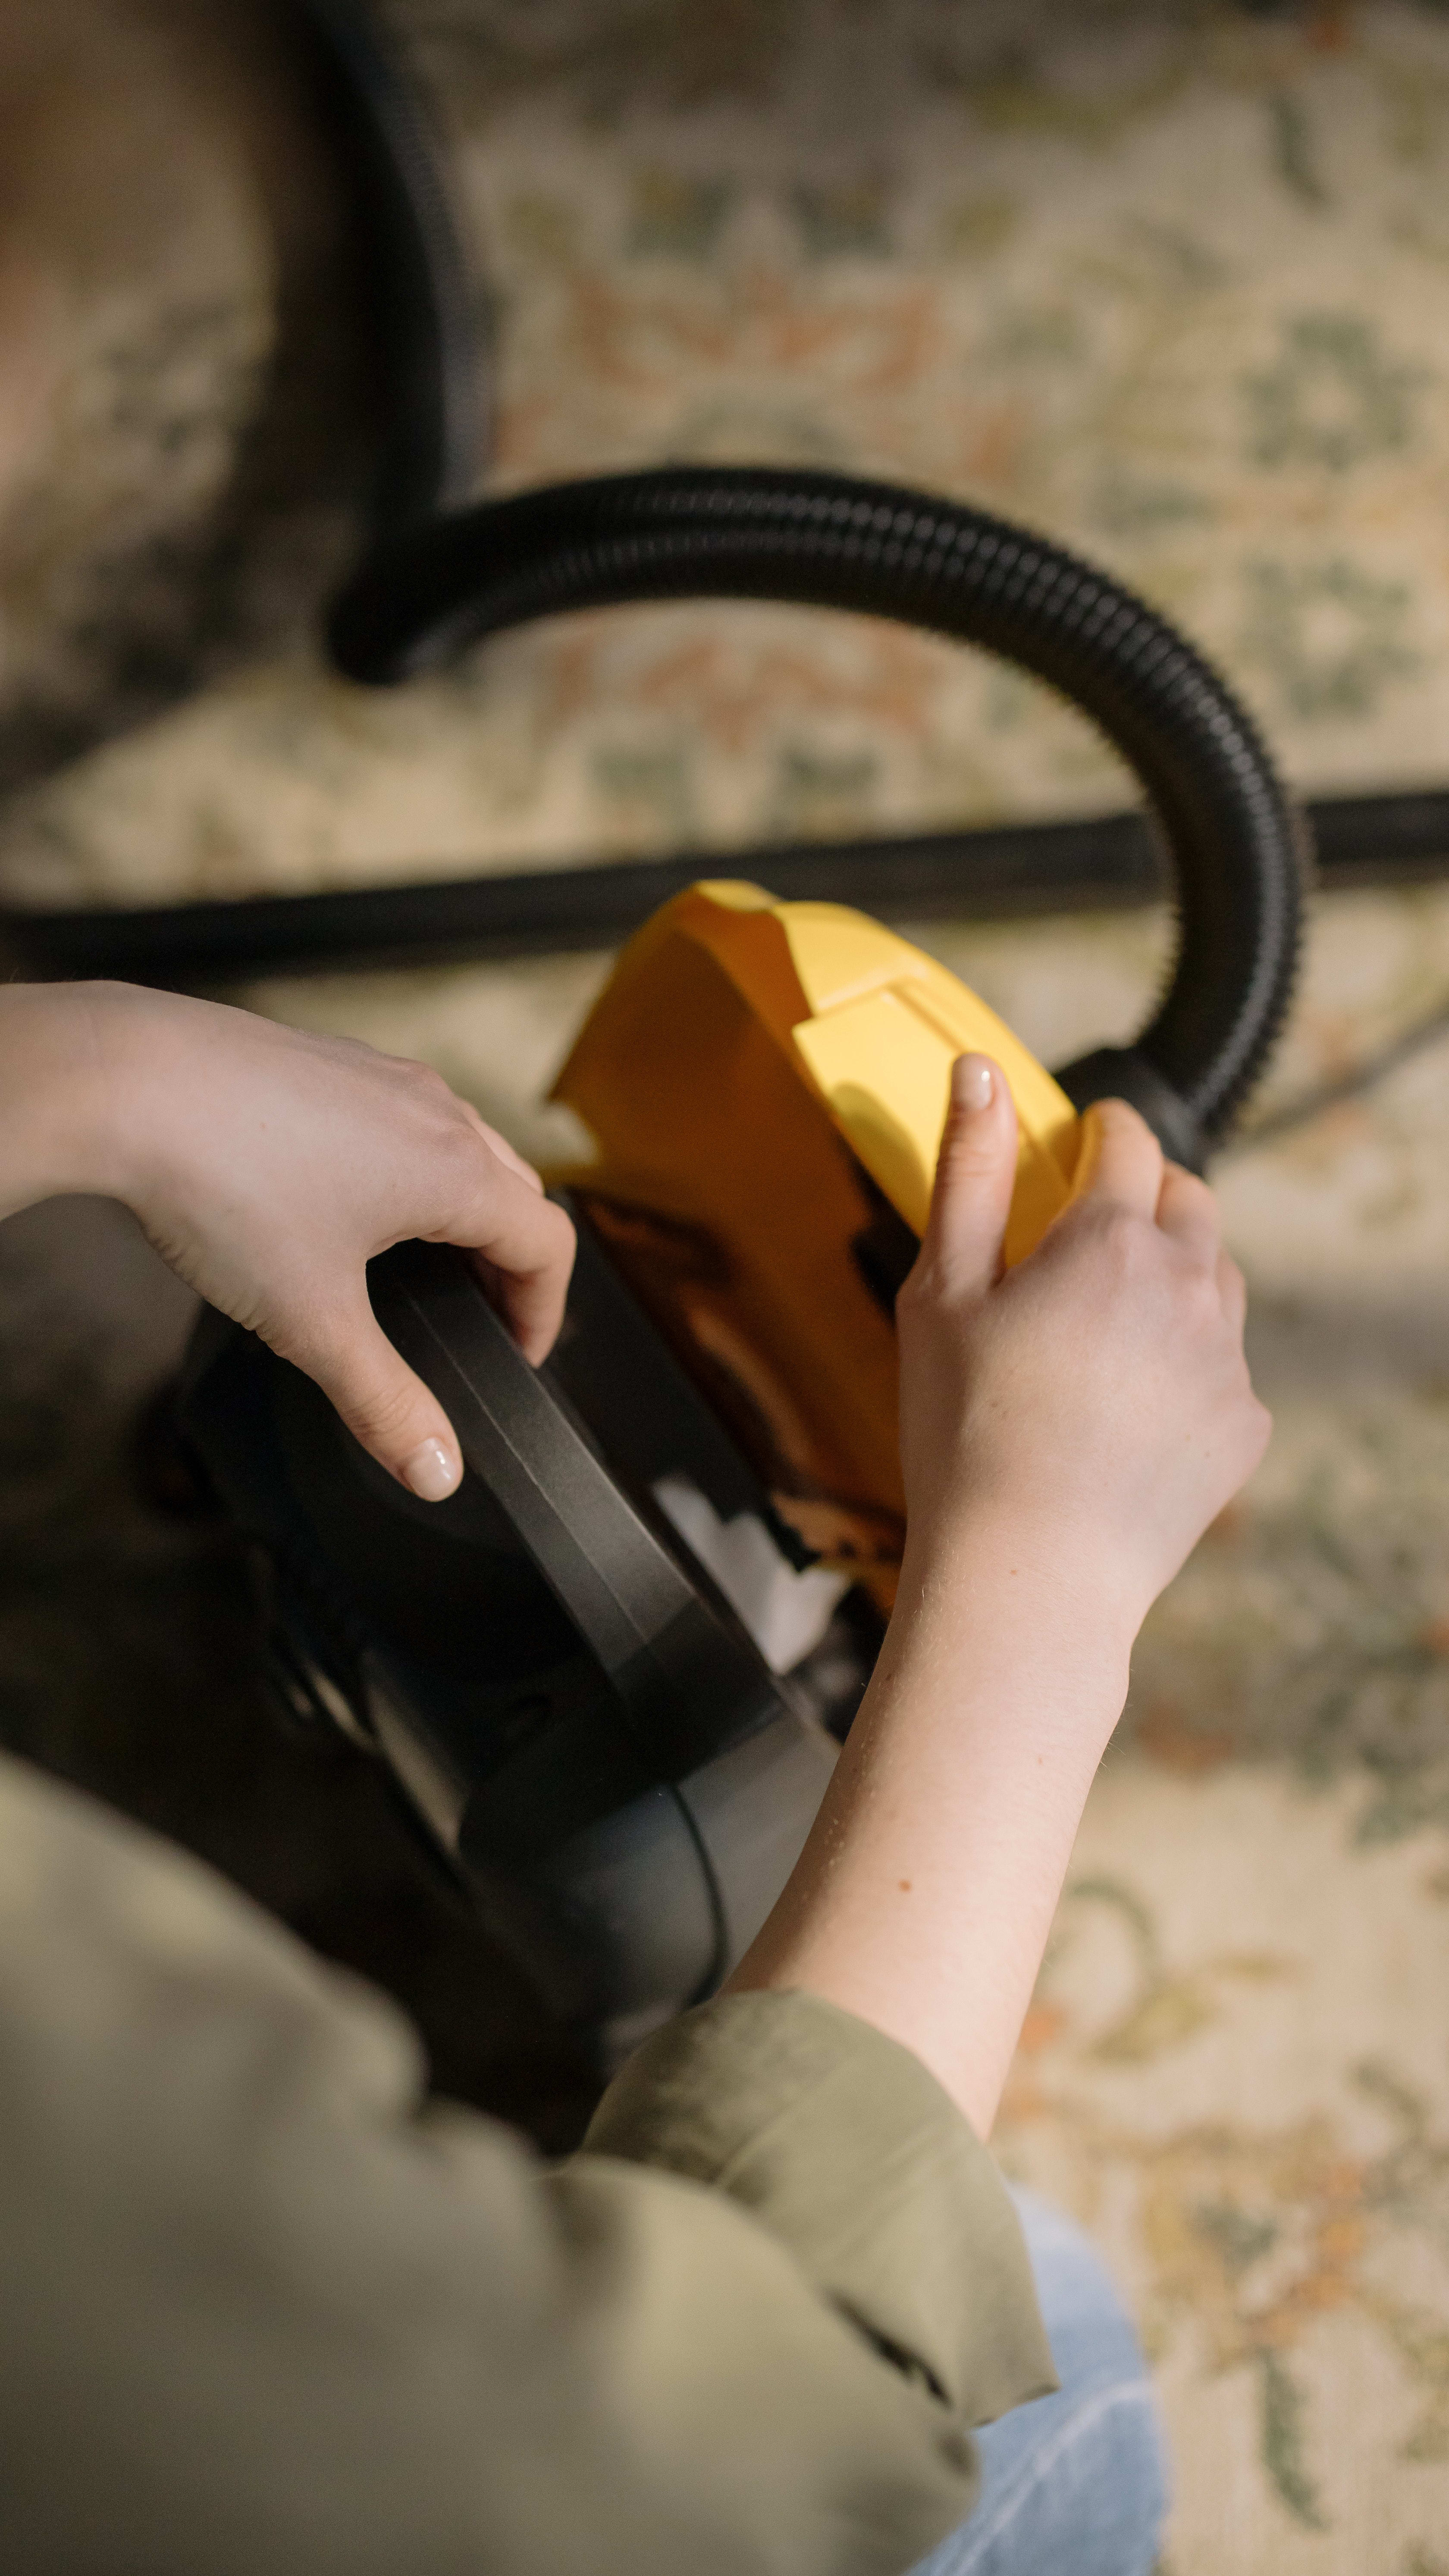 Start by opening your vacuum cleaner